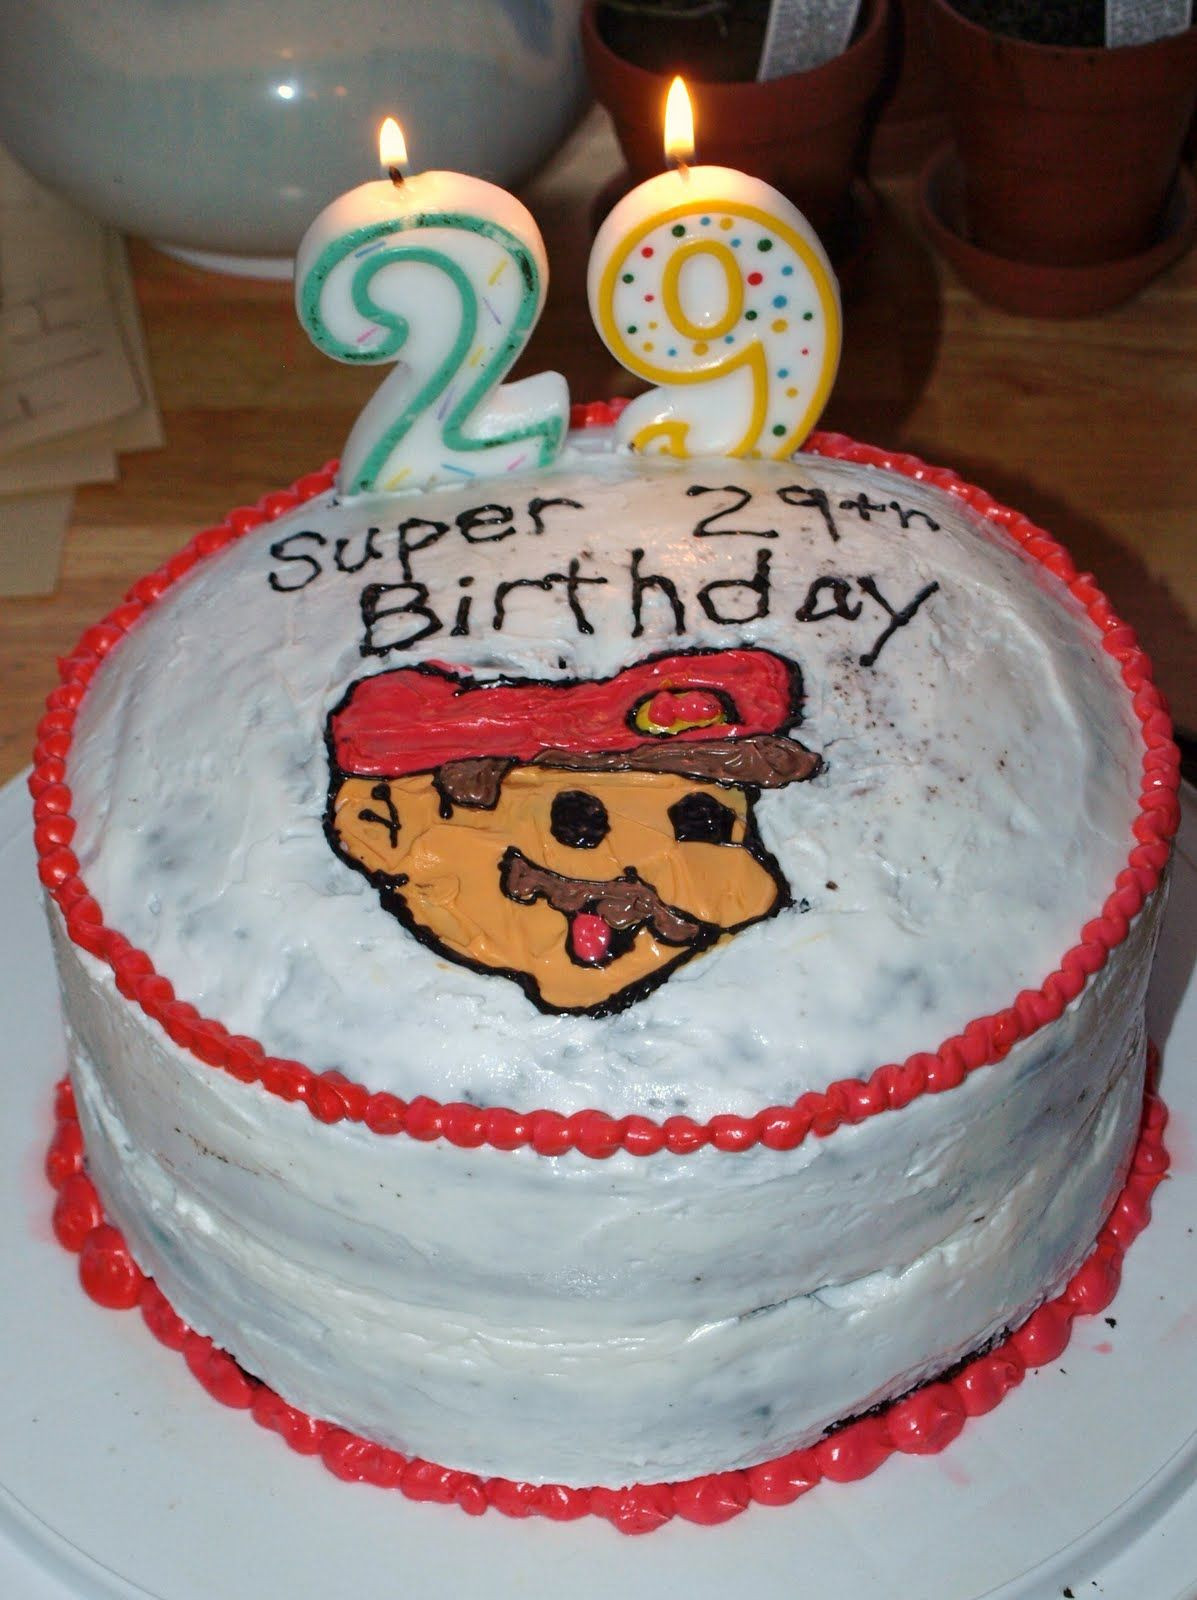 Best ideas about 29th Birthday Cake . Save or Pin Super Mario Birthday Cake for 29th birthday Now.